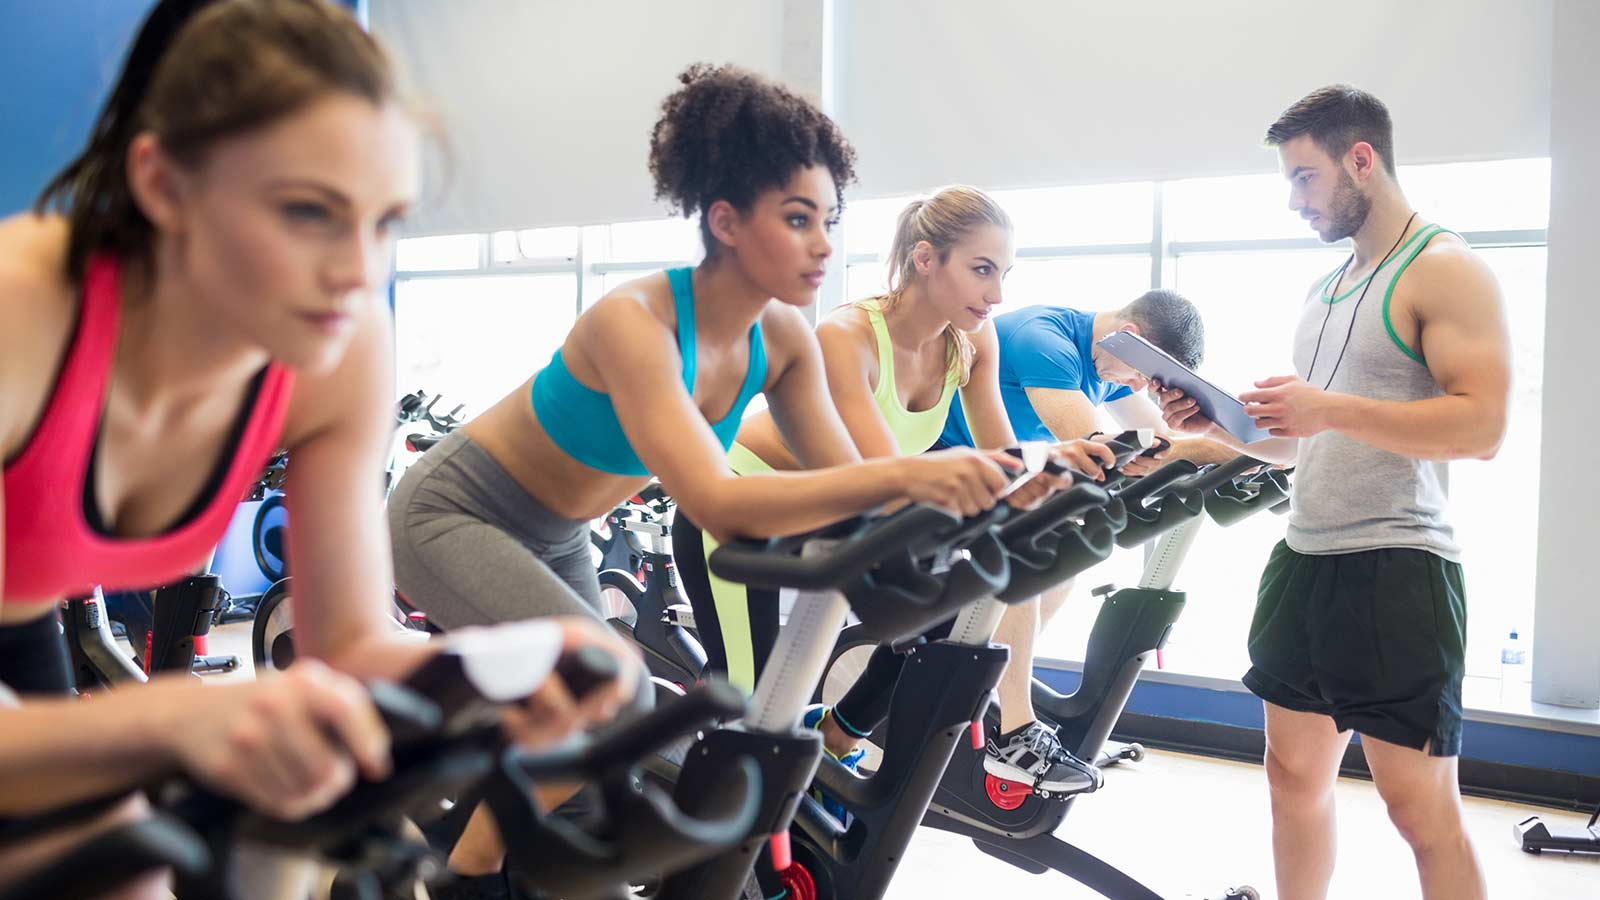 People in a spin class